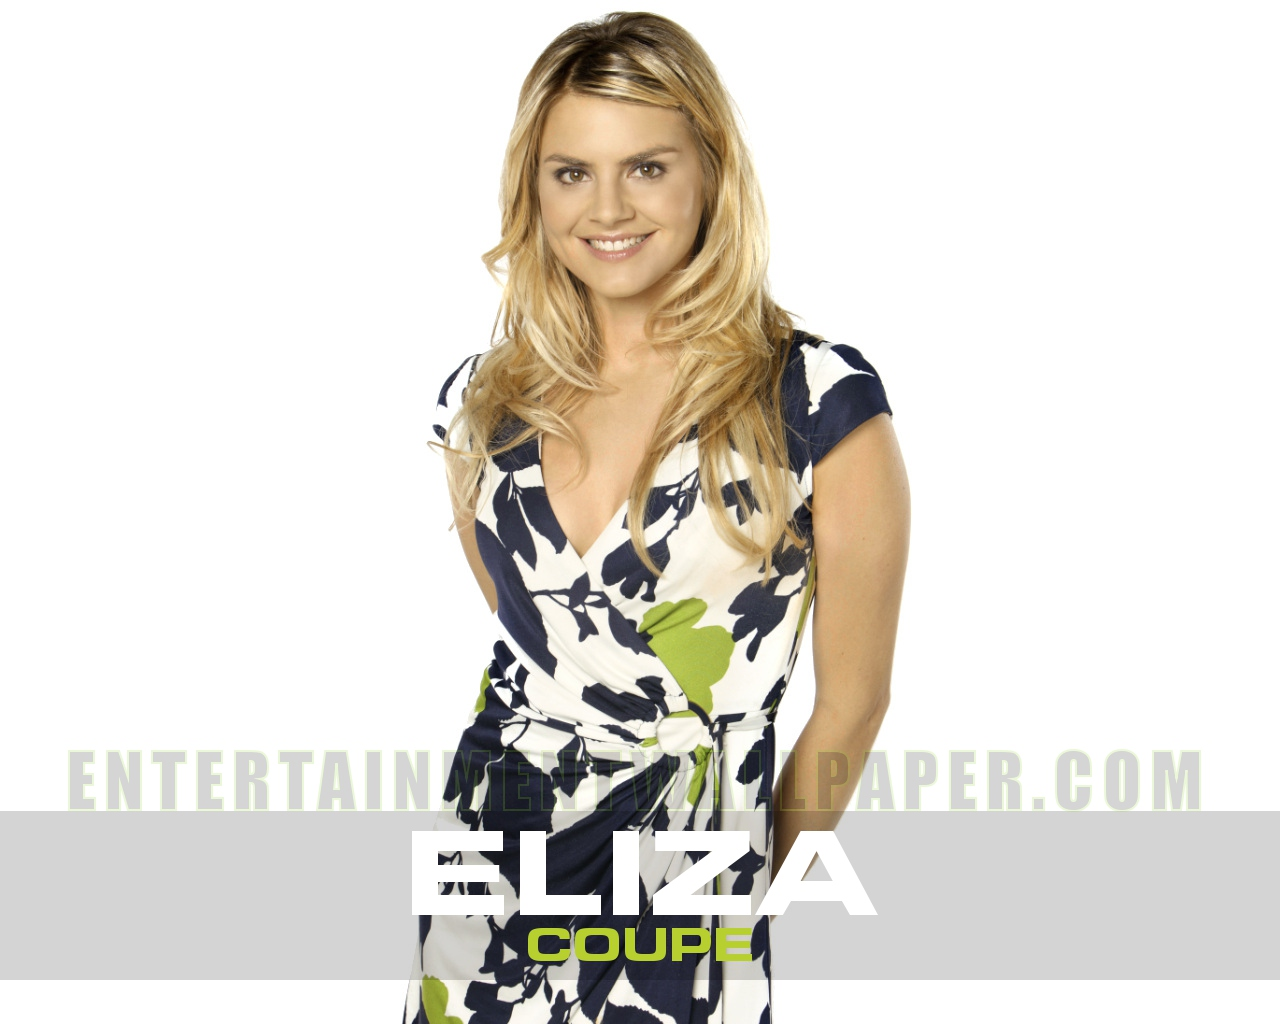 1280x1024 - Eliza Coupe Wallpapers 3